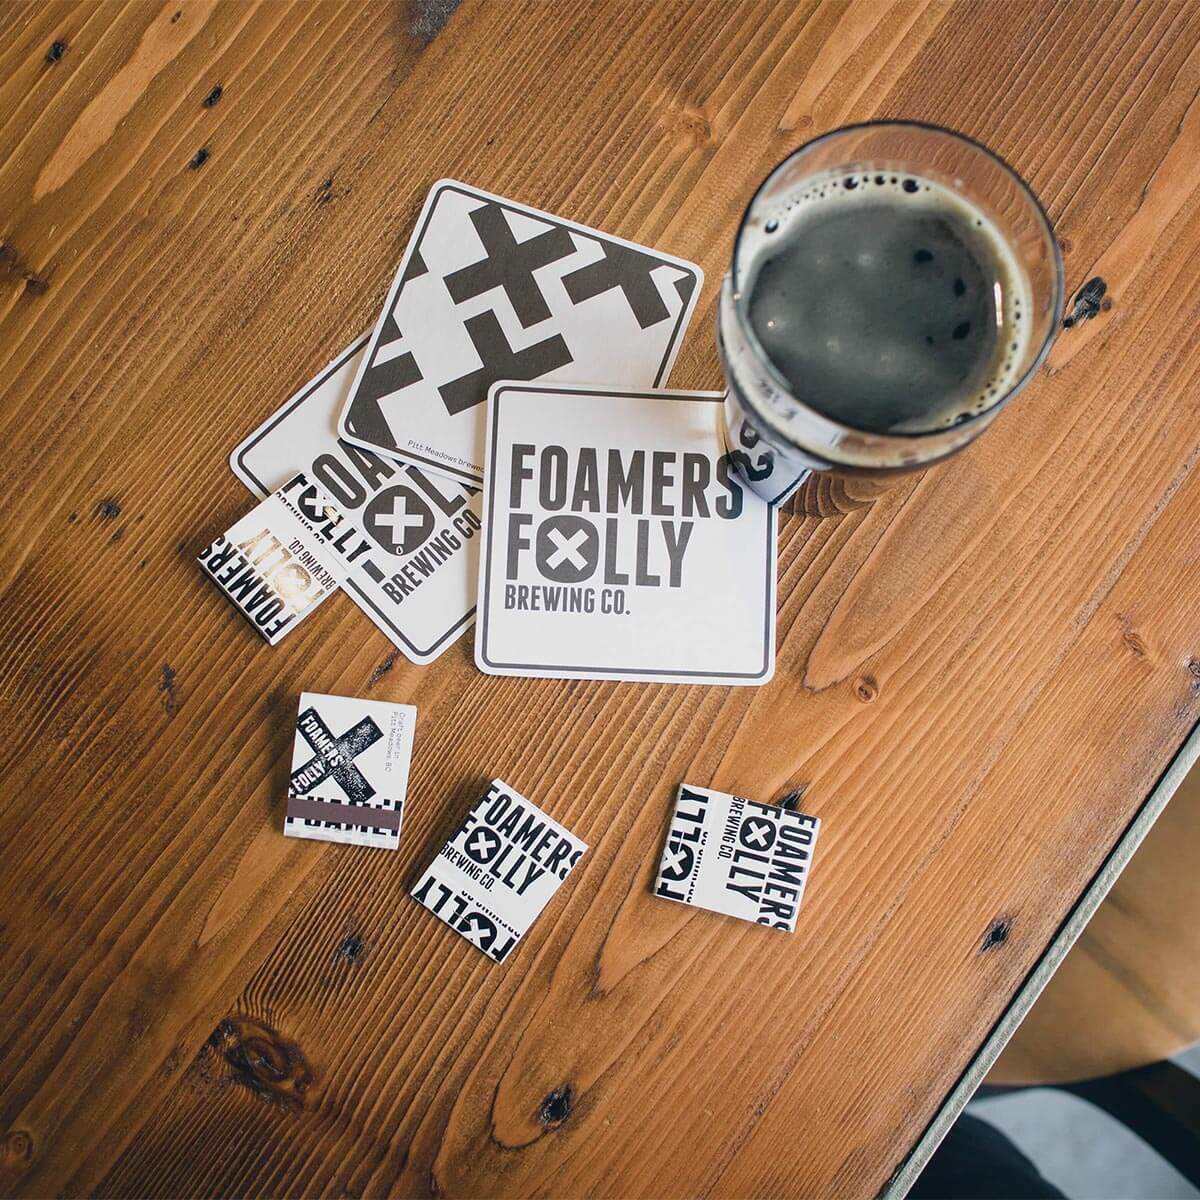 Foamers' Folly Brewing Co. branding. Rachel Teresa Park, freelance graphic designer in Victoria, BC